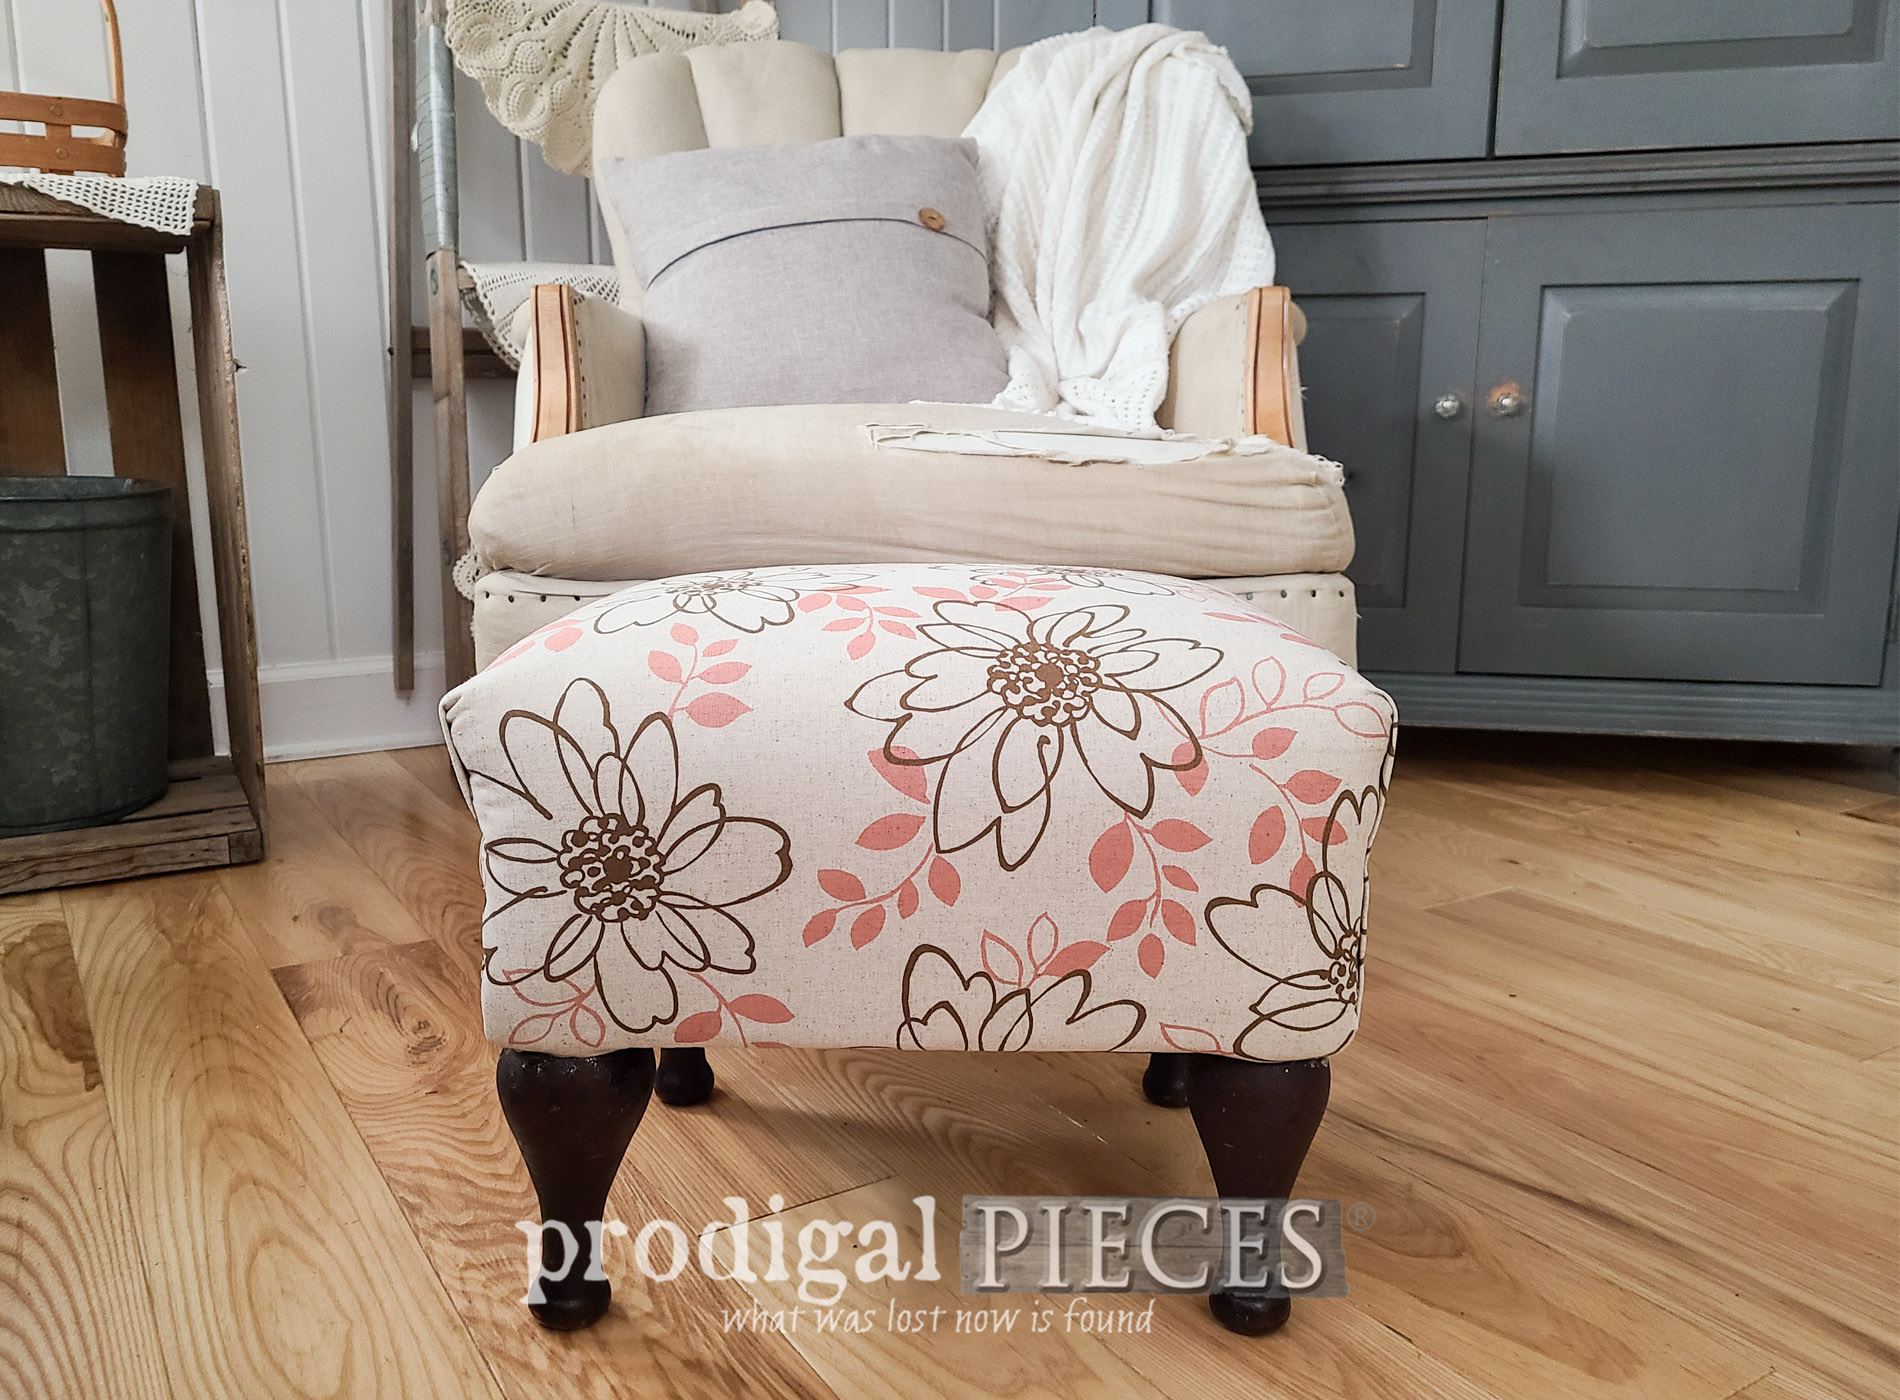 Featured Vintage Vinyl Footstool by Larissa of Prodigal Pieces | prodigalpieces.com #prodigalpieces #furniture #vintage #home #homedecor